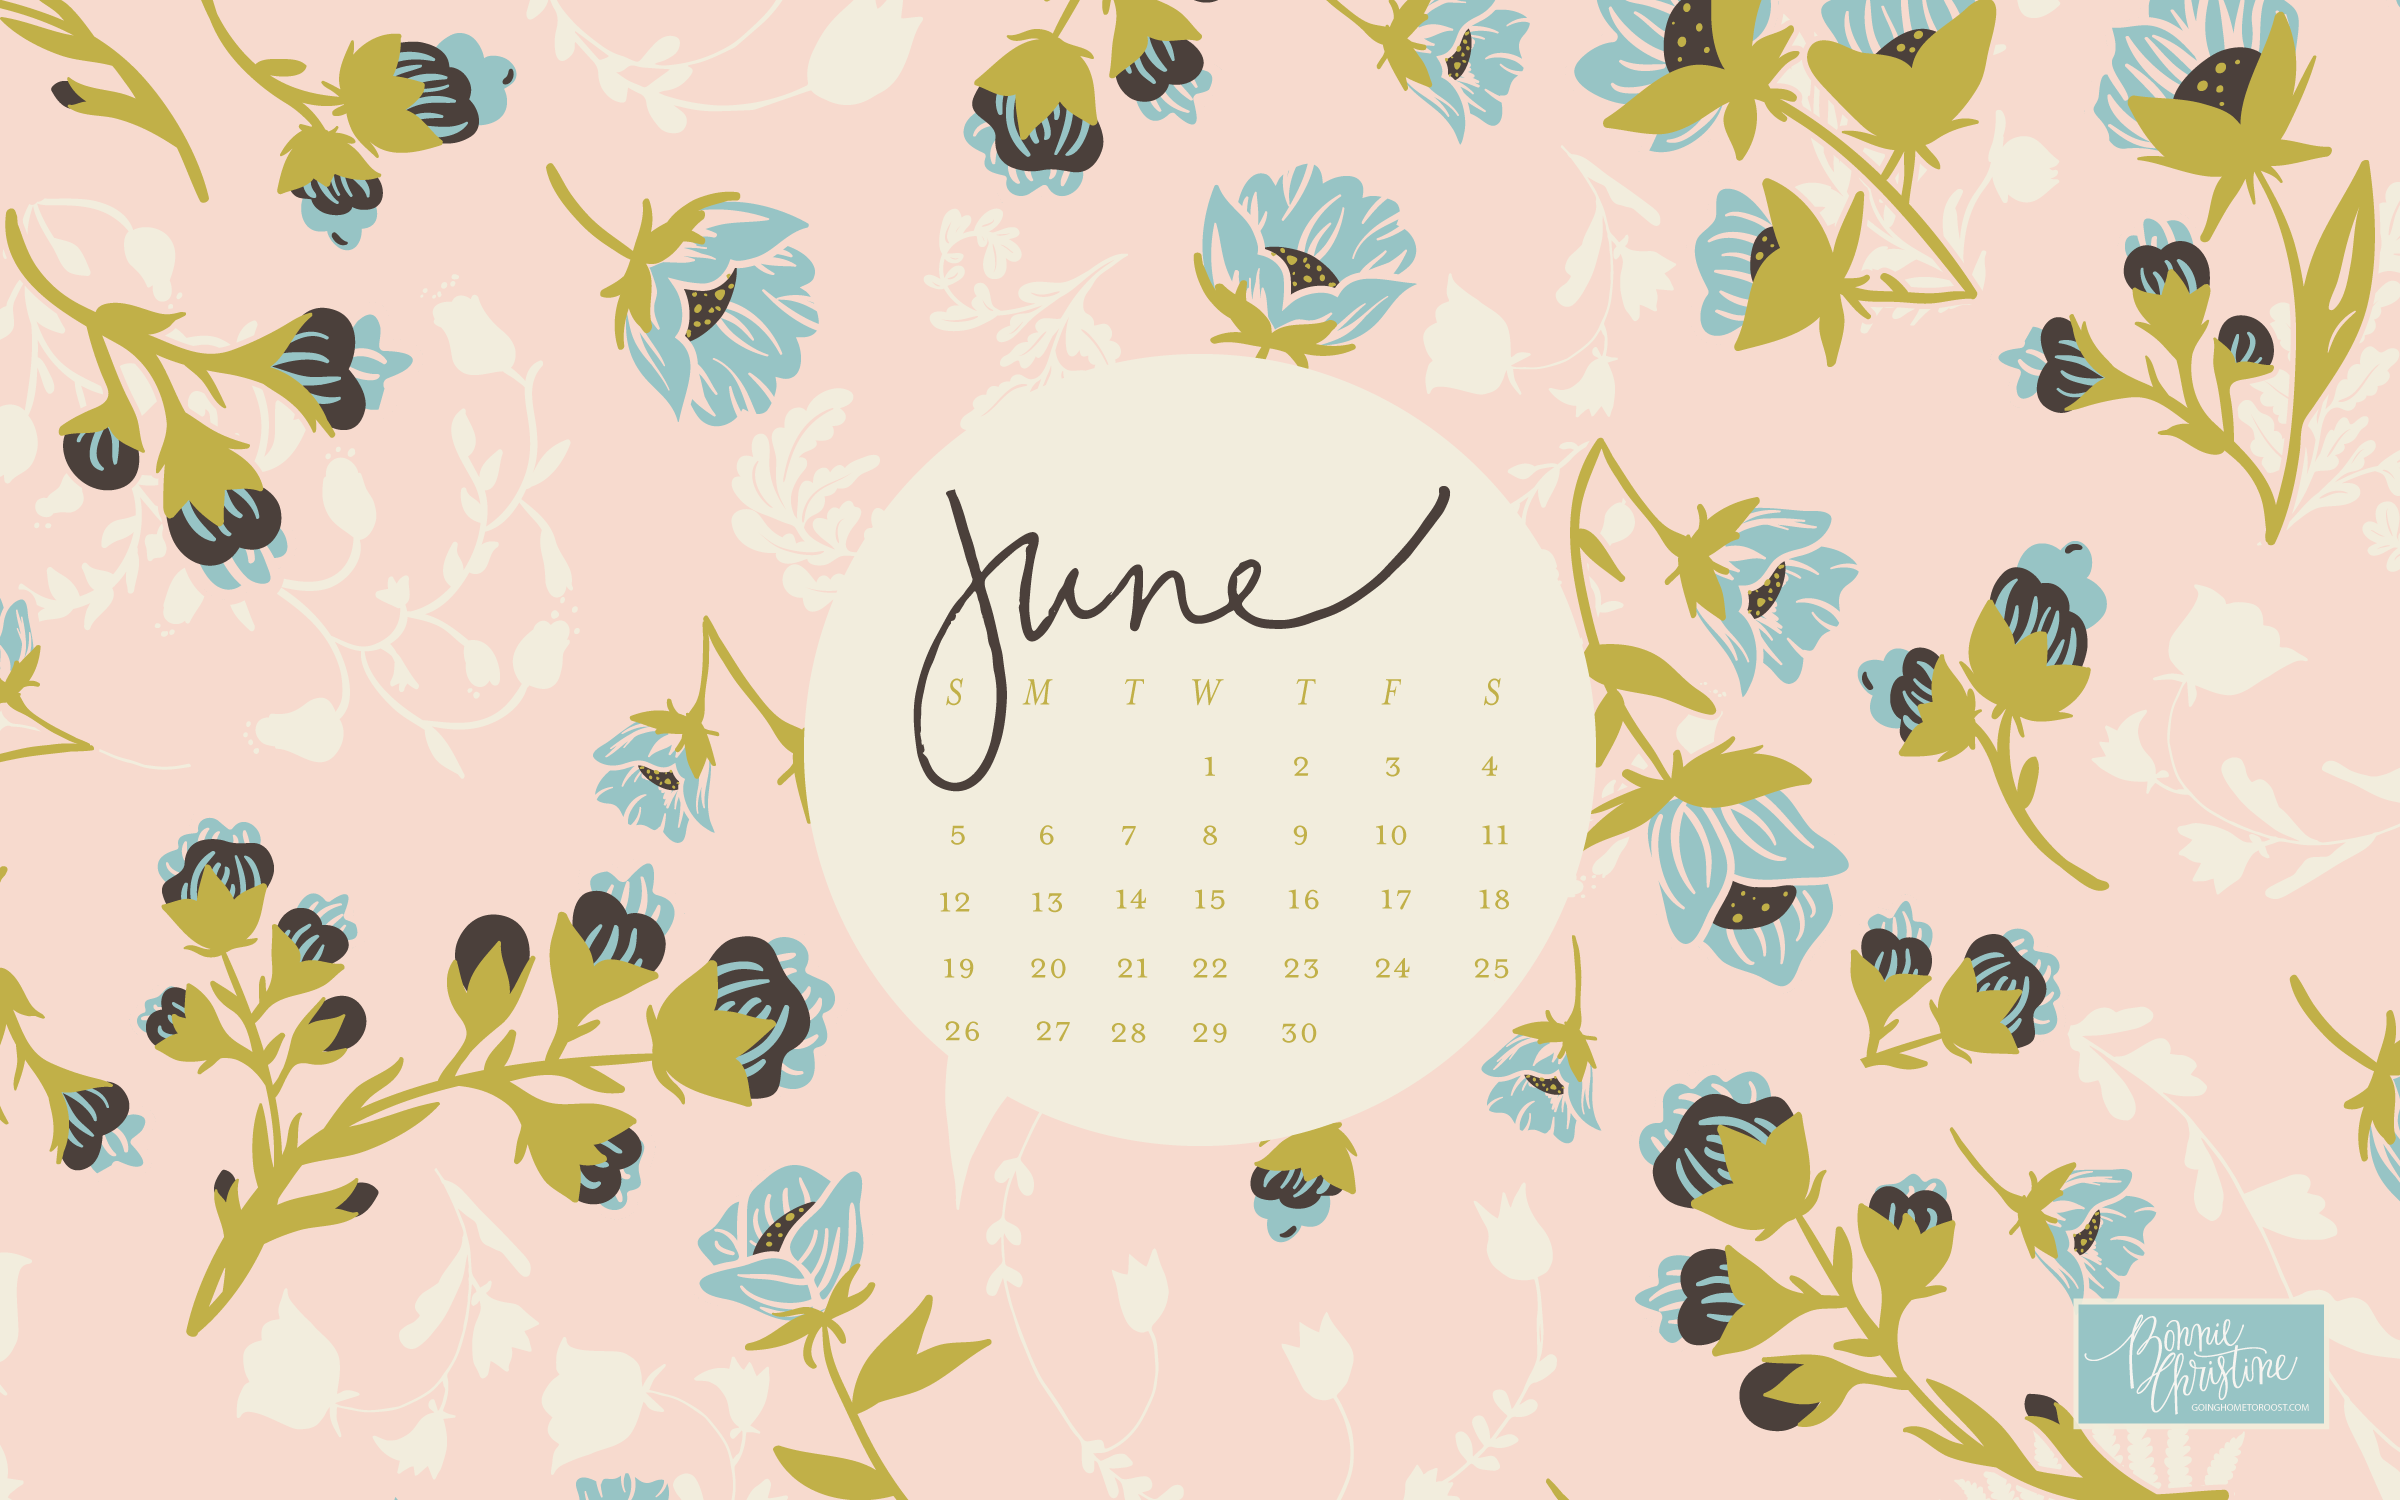 June 2016 Desktop and Smartphone Backgrounds going home to roost 2400x1500